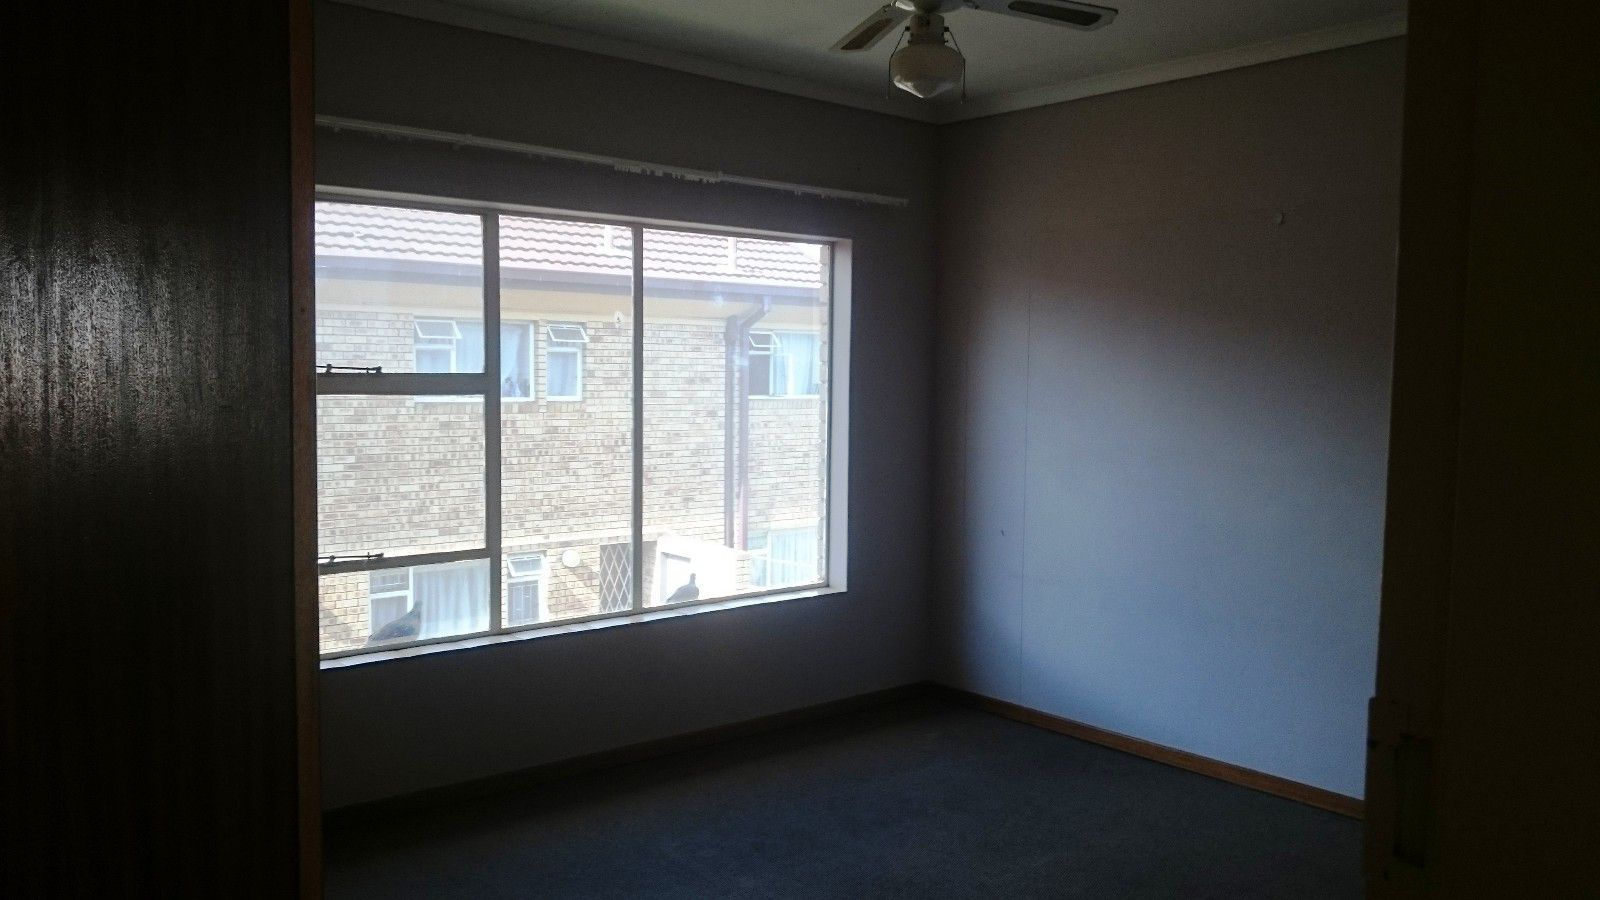 Potchefstroom Central property for sale. Ref No: 13449643. Picture no 20